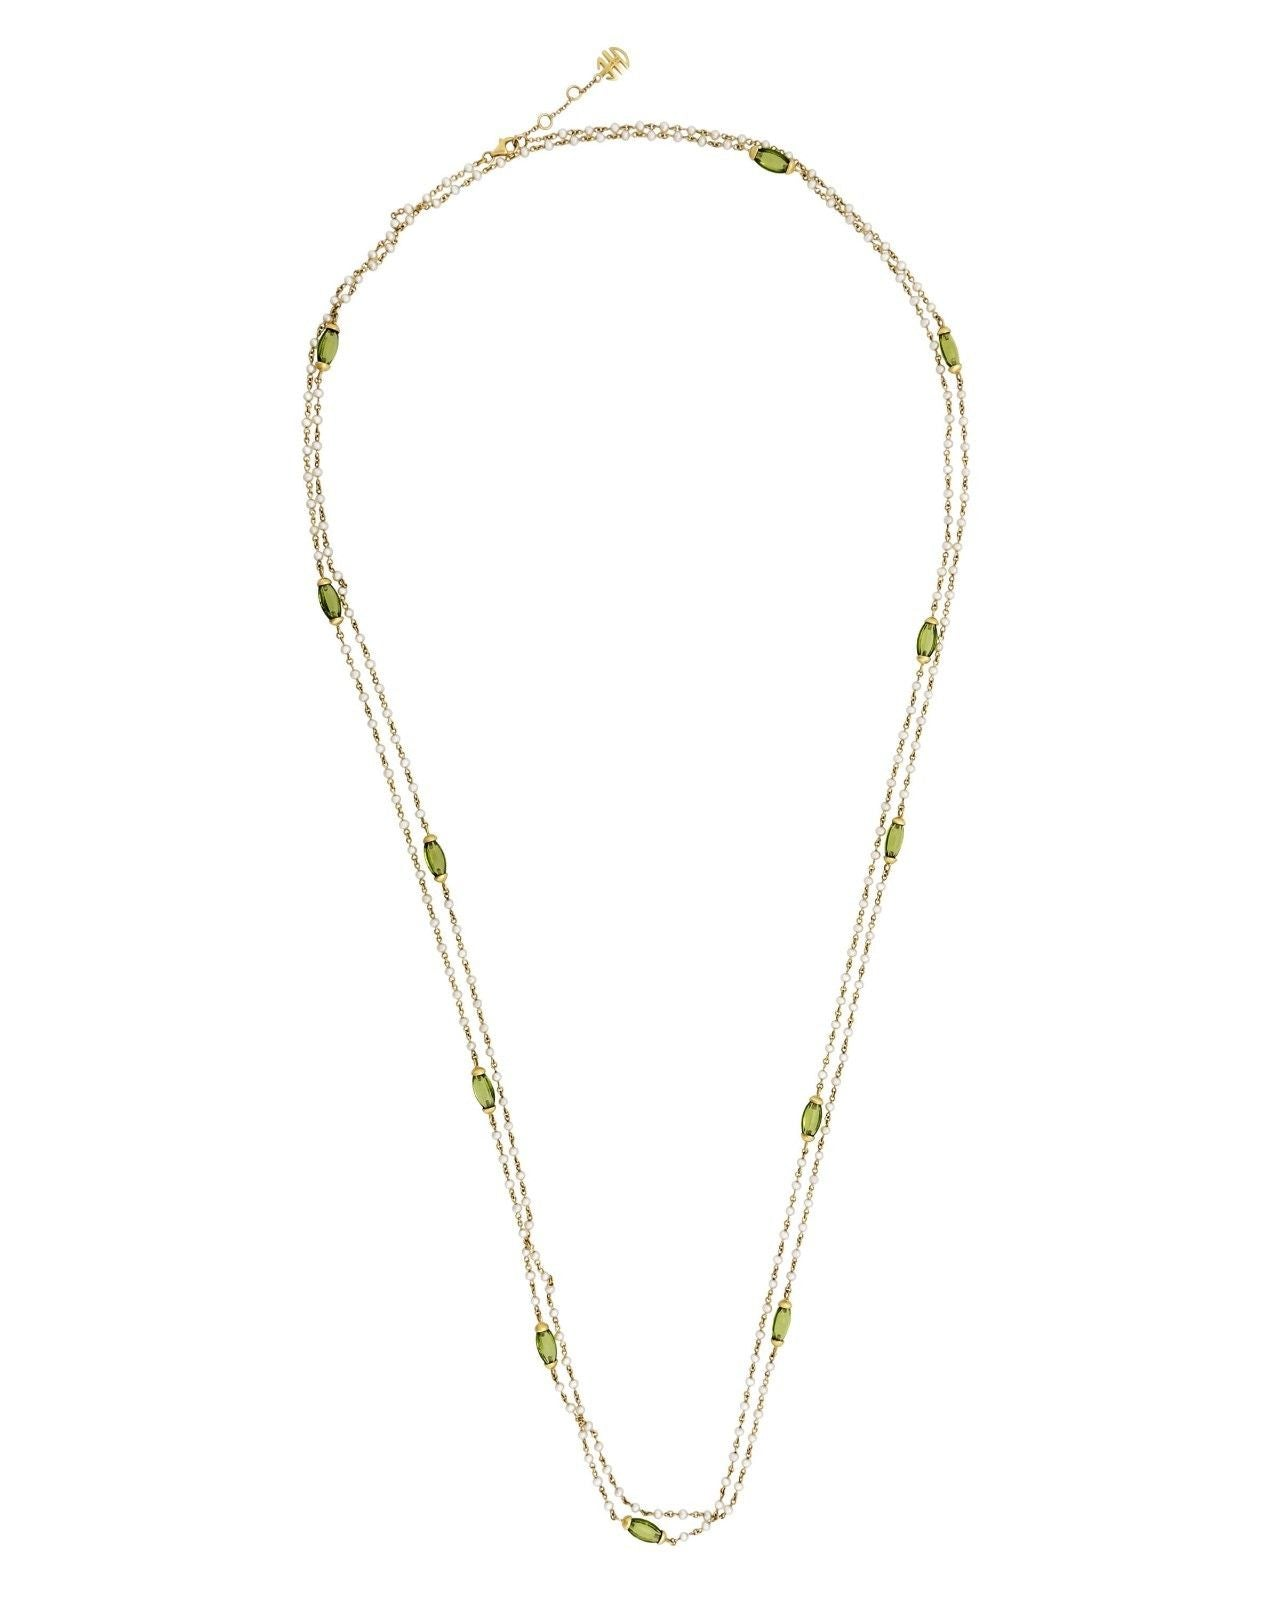 Mimi Milano Necklace In 18K Yellow Gold, Peridot Pink Pearls c102arp